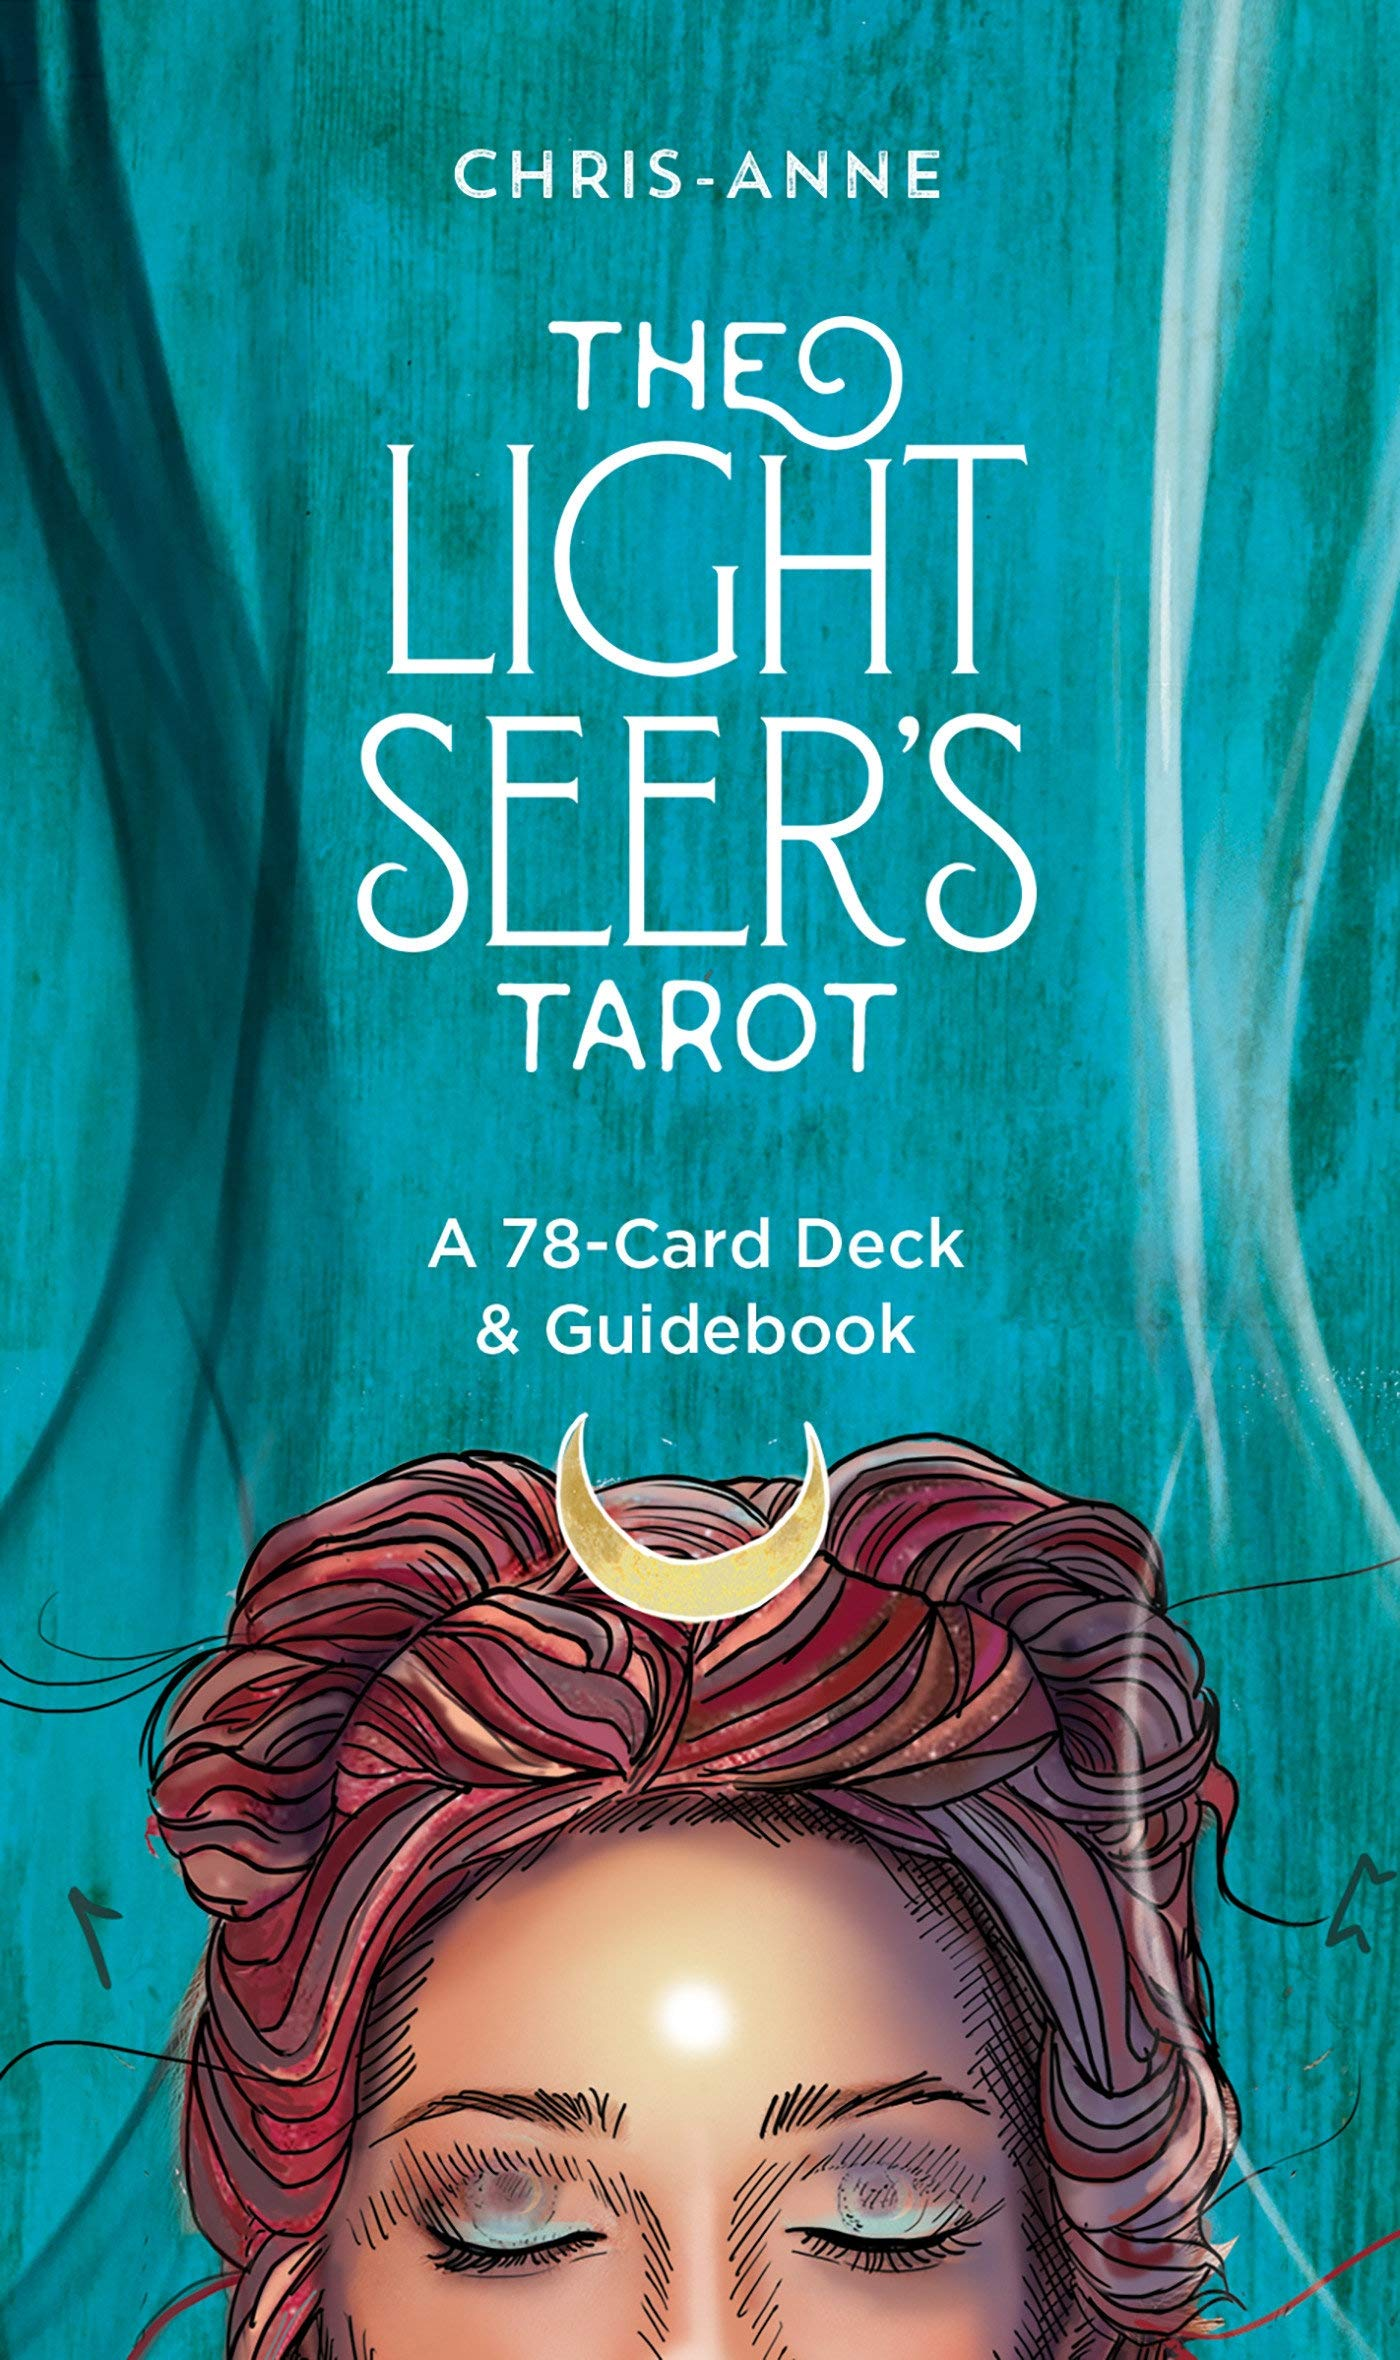 The Light Seers Tarot: Amazon.es: Chris-Anne, Chris-Anne ...